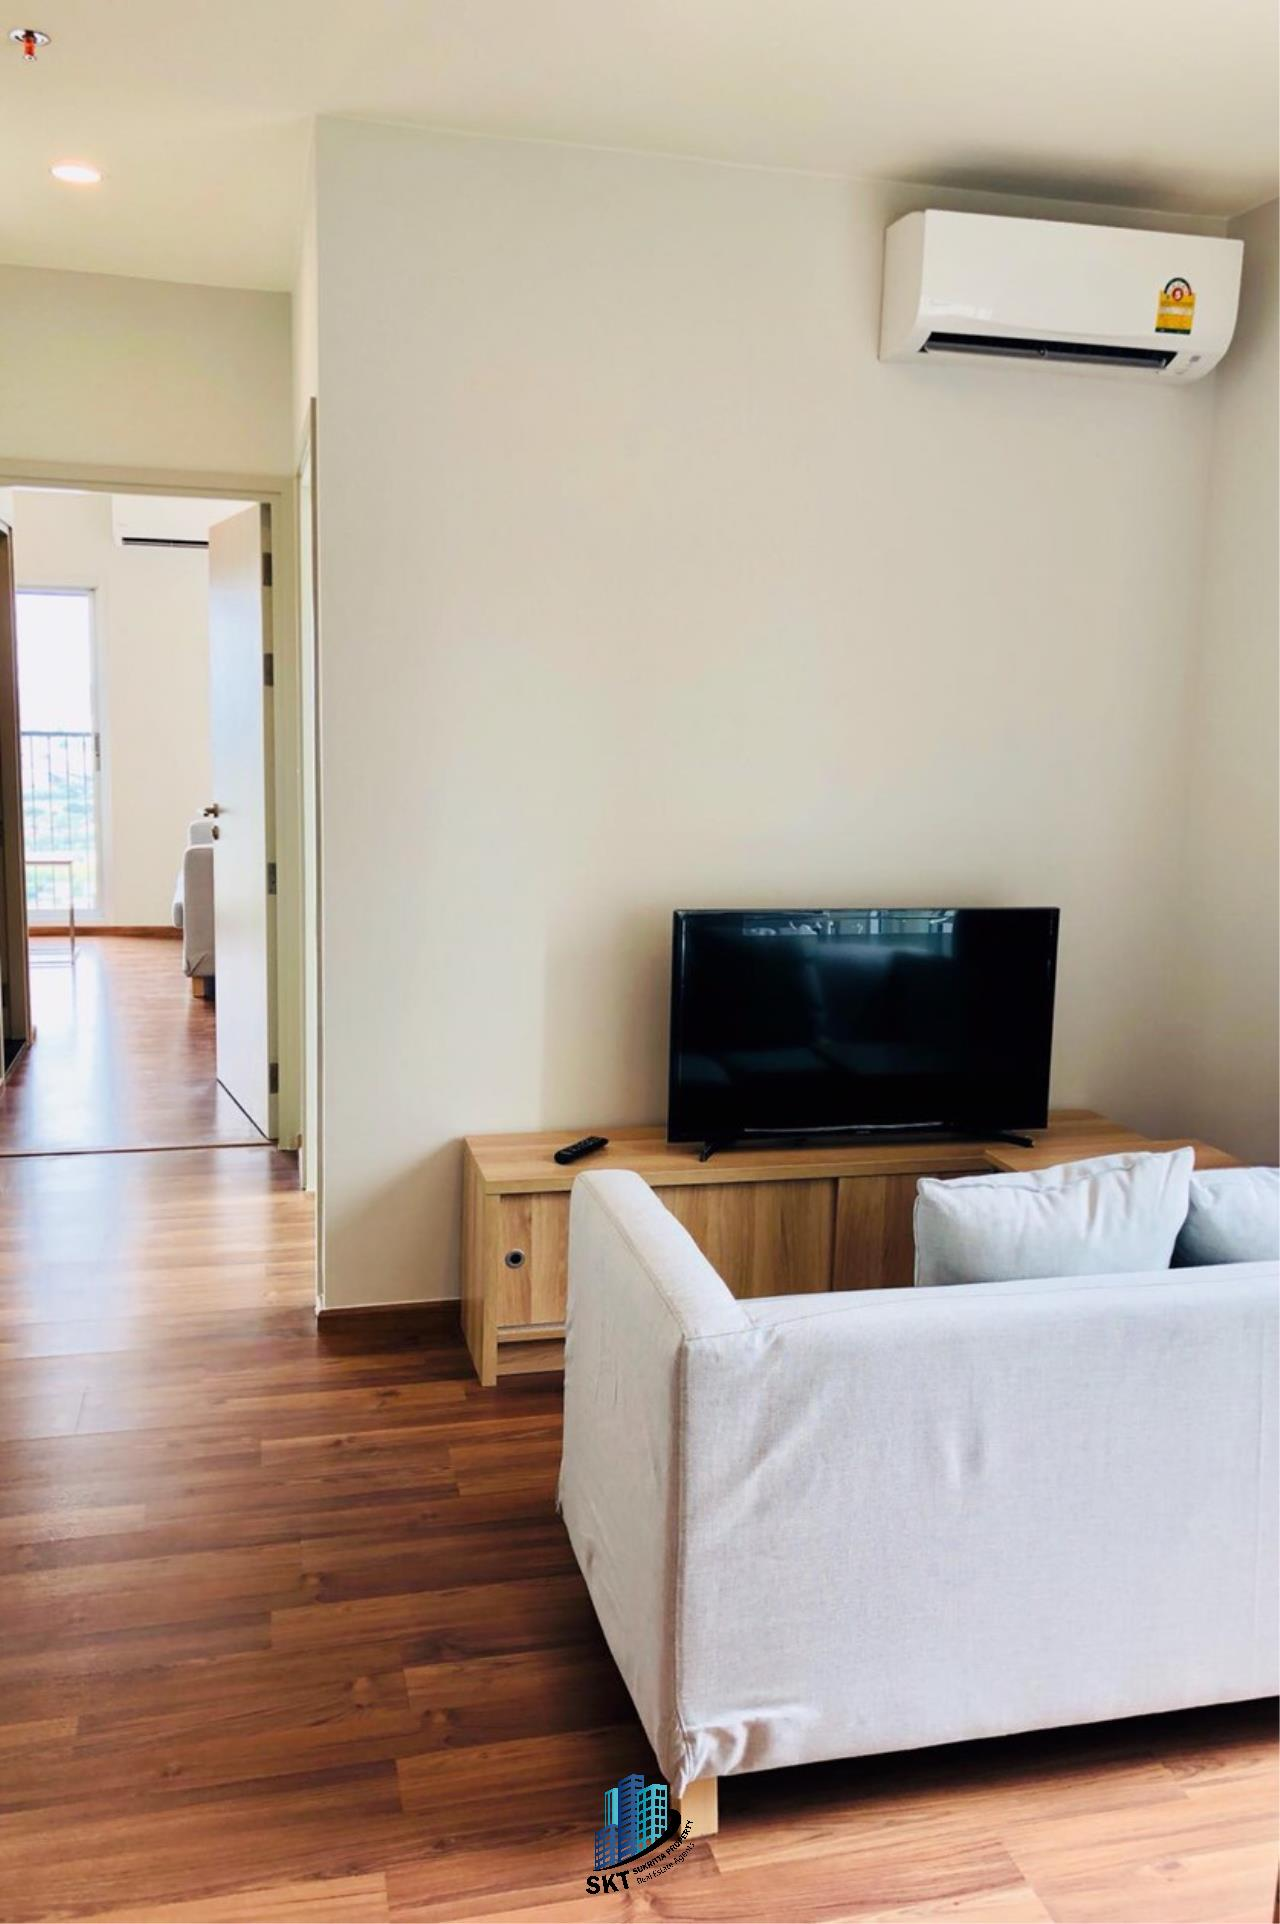 Sukritta Property Agency's FOR RENT NOBLE REVOLVE RATCHADA 2 NEAR MRT THAILAND CULTURAL CENTER 1